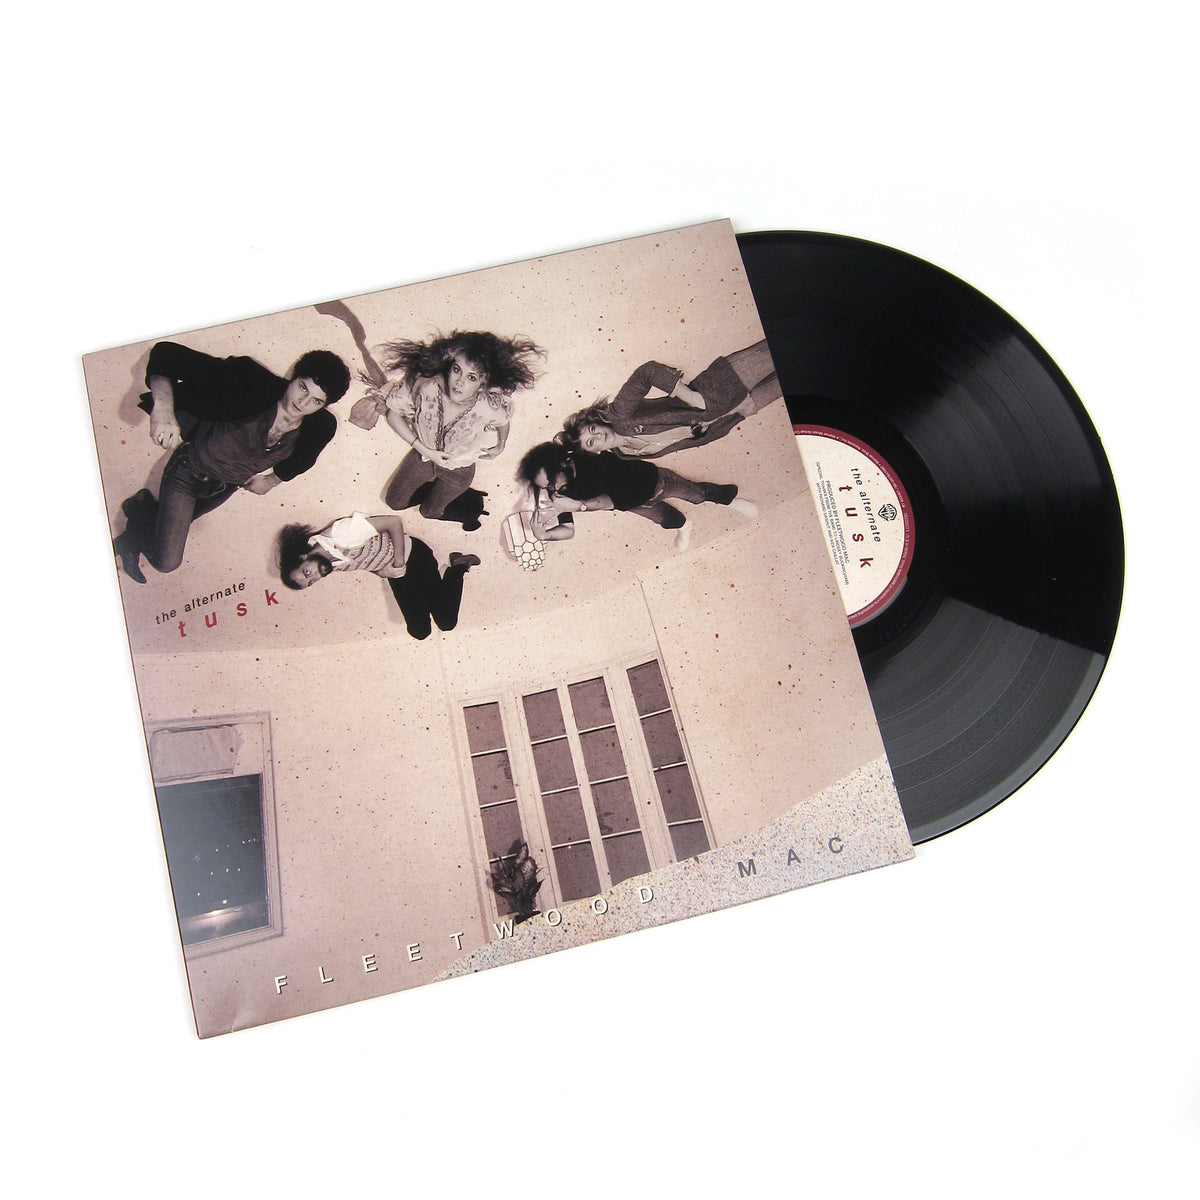 Fleetwood Mac: The Alternate Tusk (180g) Vinyl 2LP (Record Store Day)